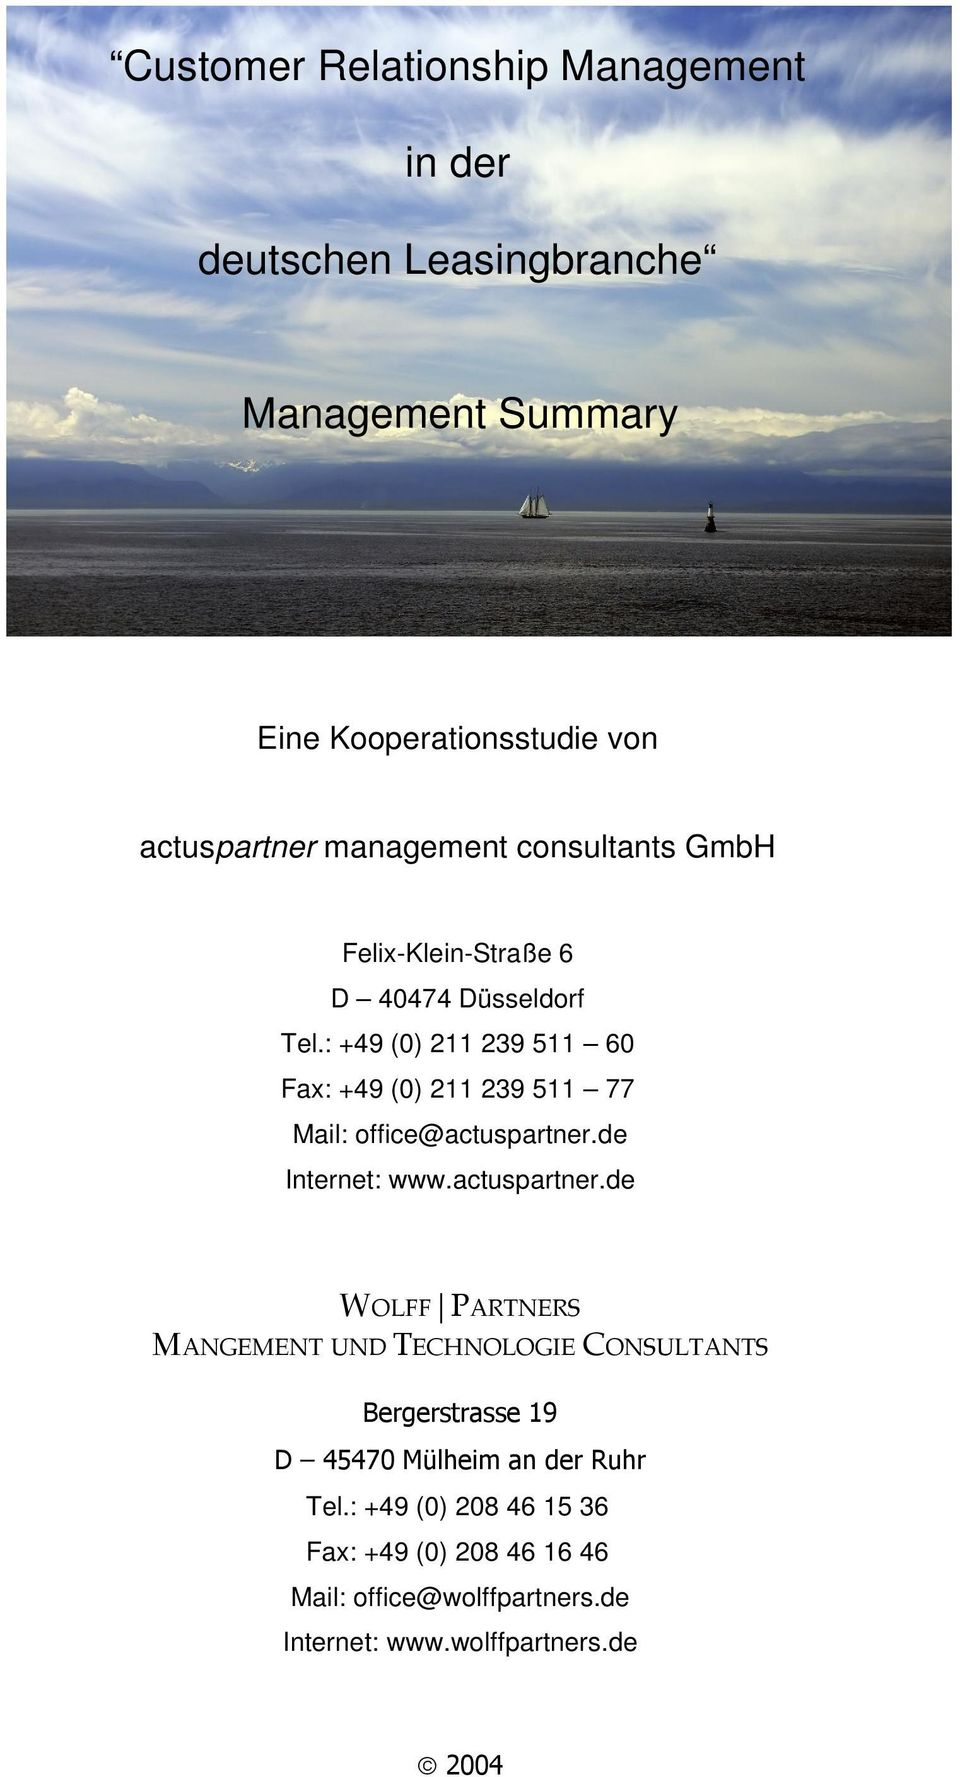 Tel.: +49 (0) 211 239 511 60 Fax: +49 (0) 211 239 511 77 Mail: office@actuspartner.de Internet: www.